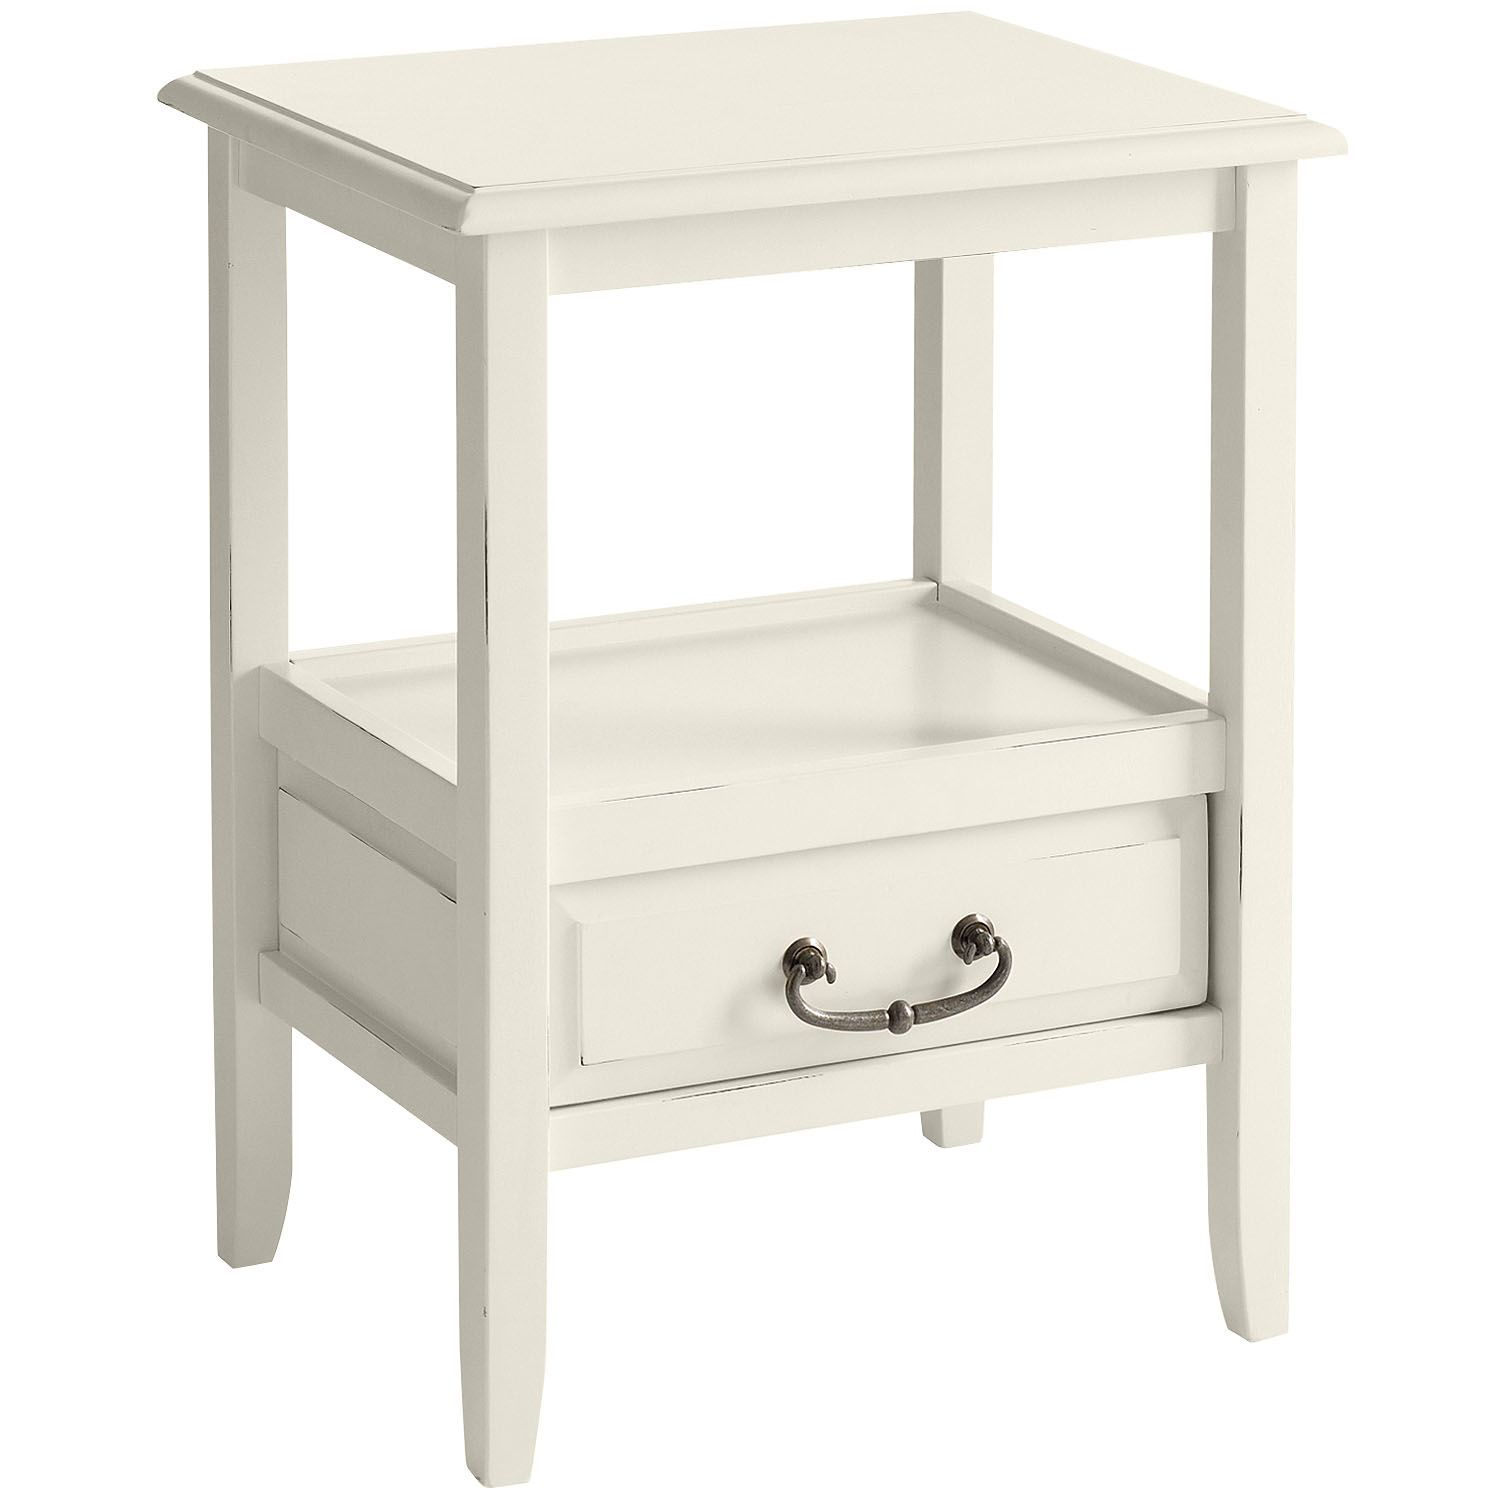 anywhere end table antique white pier available lcf accent tables fruit cocktail recipe half moon small brass coffee ethan allen painted furniture home ornaments wooden bar